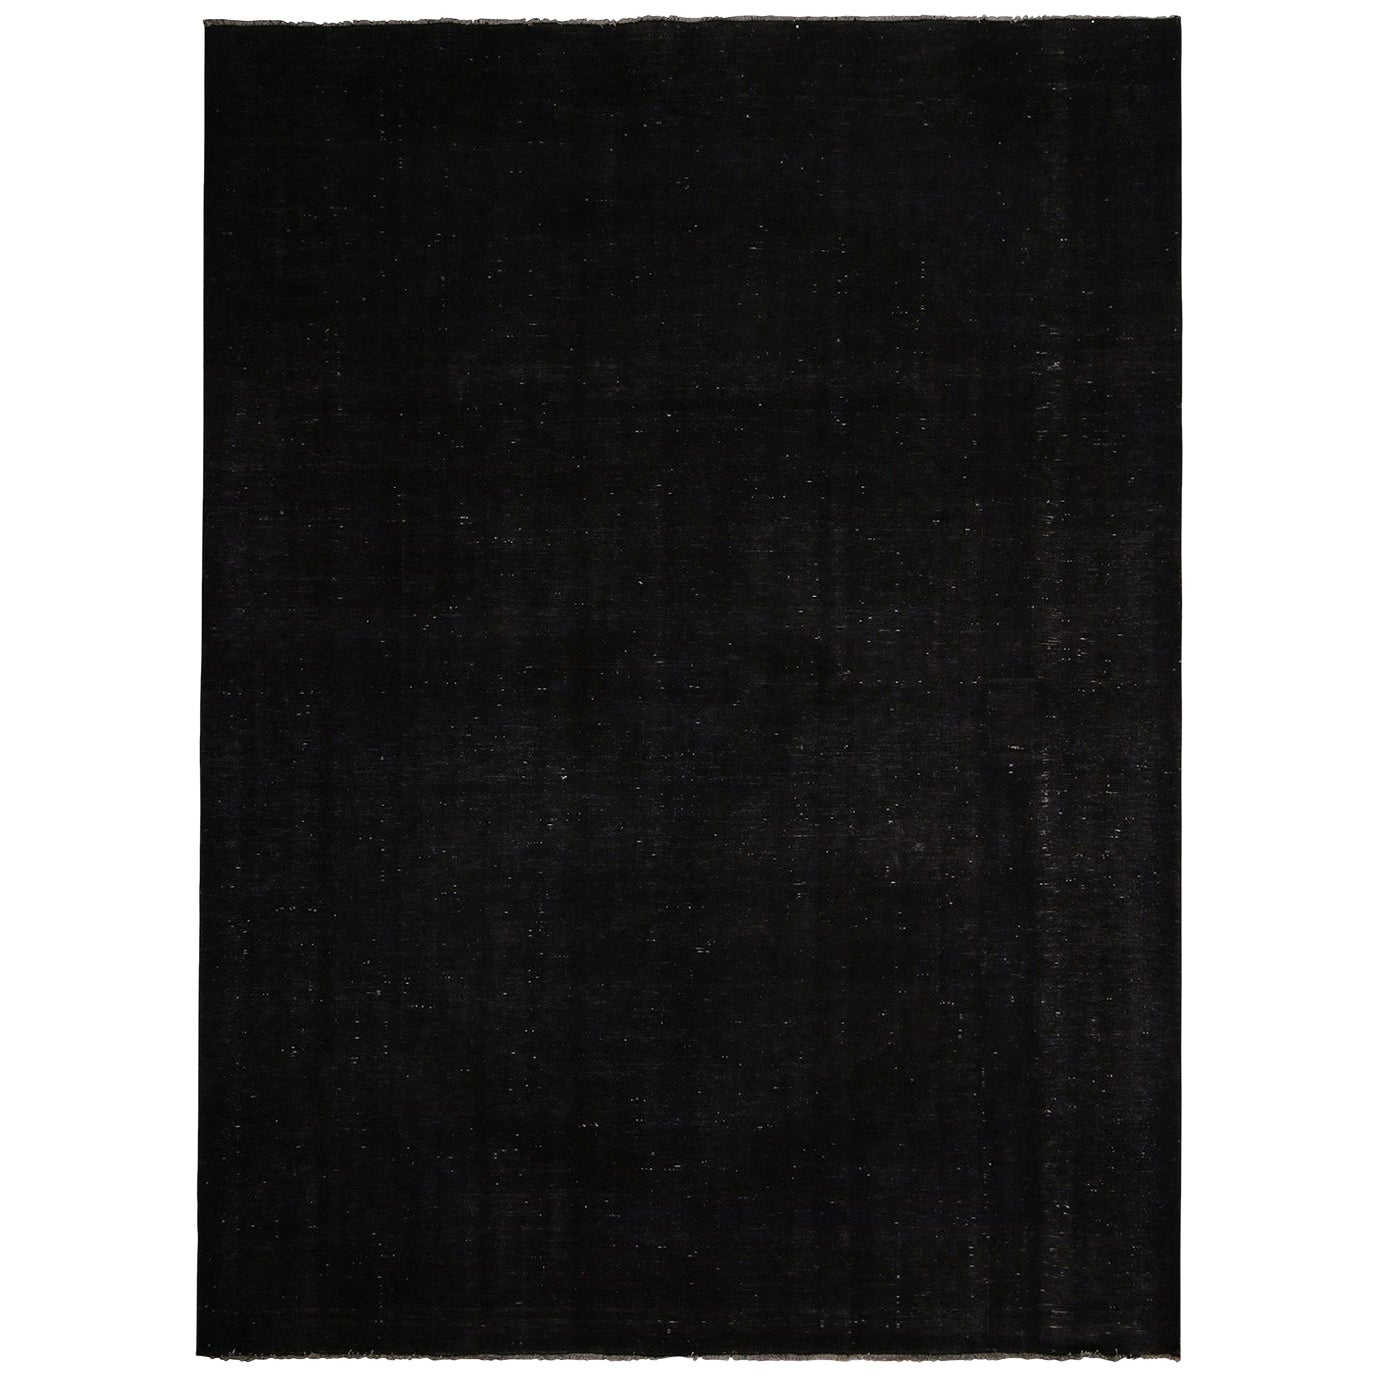 Rug & Kilim's Contemporary Black and White Wool Rug